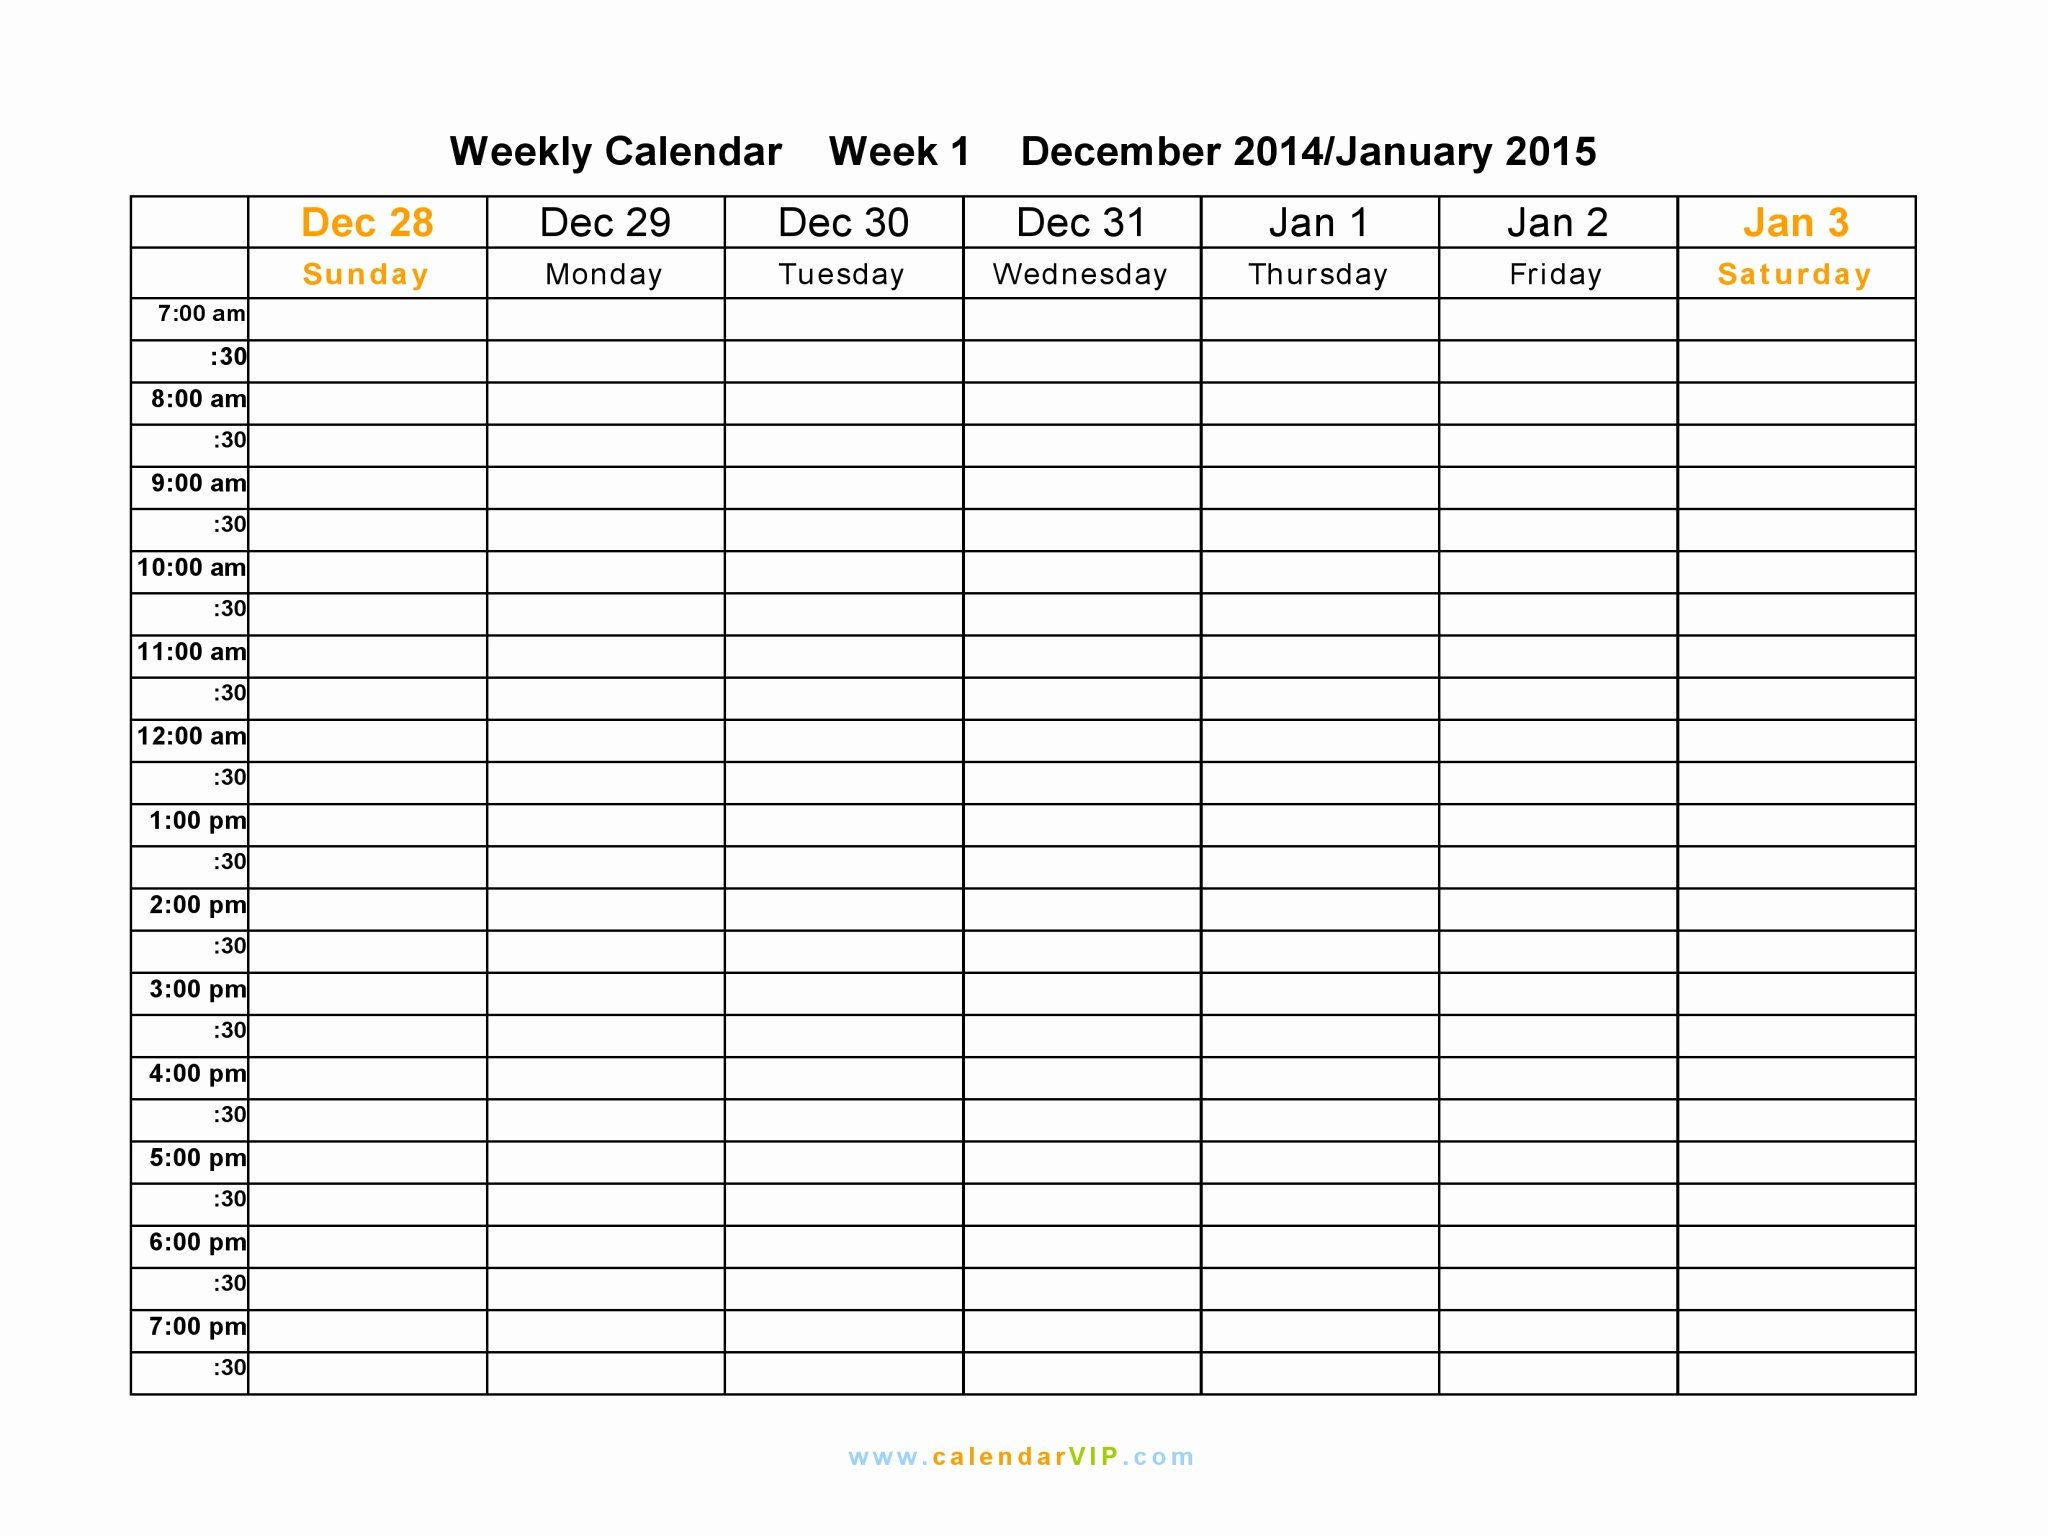 Weekly Calendar Spreadsheet